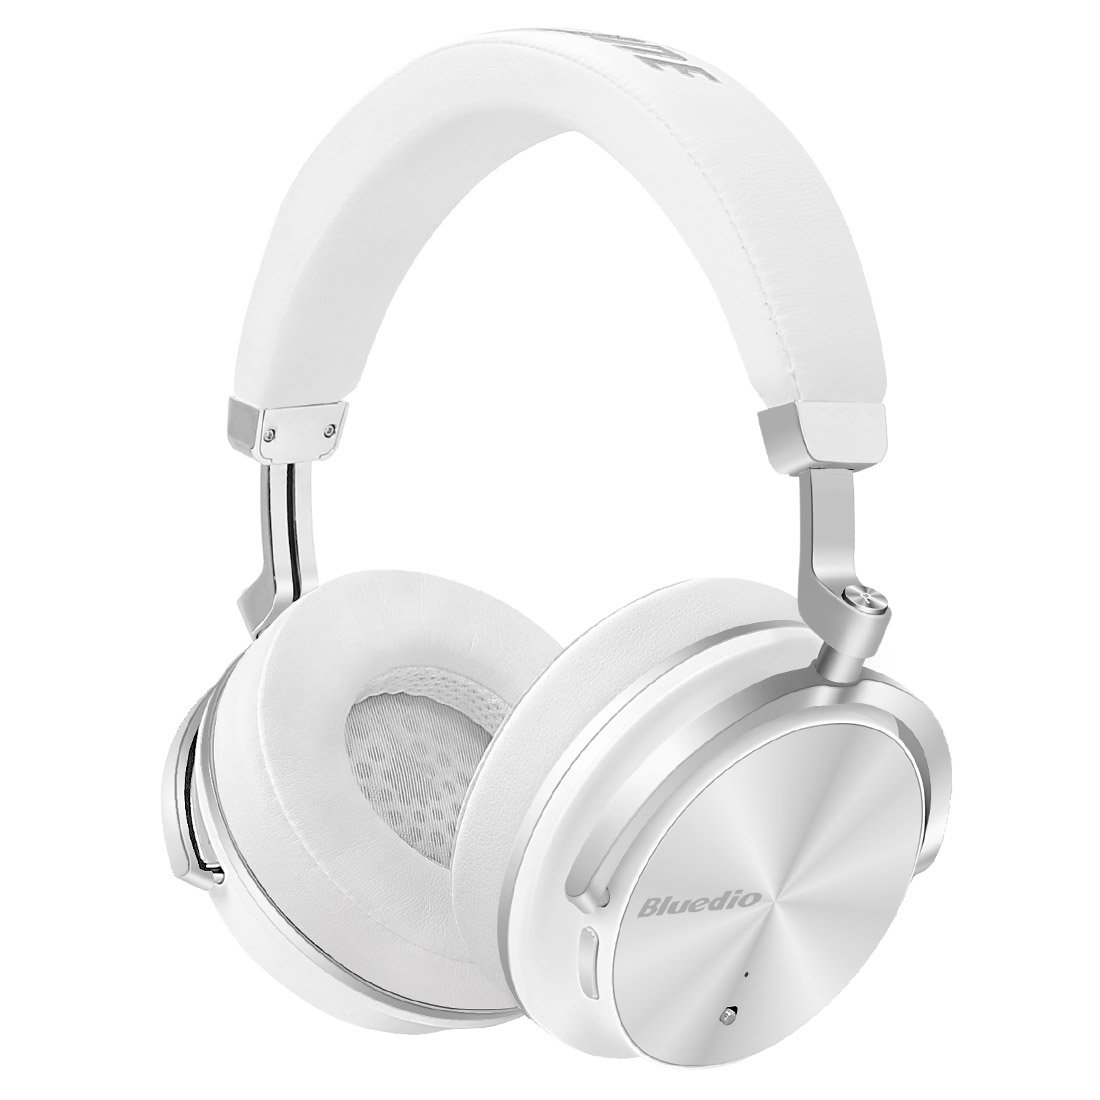 Bluetooth Wireless Headphones, Bluedio T4 (Turbine) Bluetooth 4.2 Stereo Headphones Active Noise Cancelling Over-Ear Headphones with Mic (White)